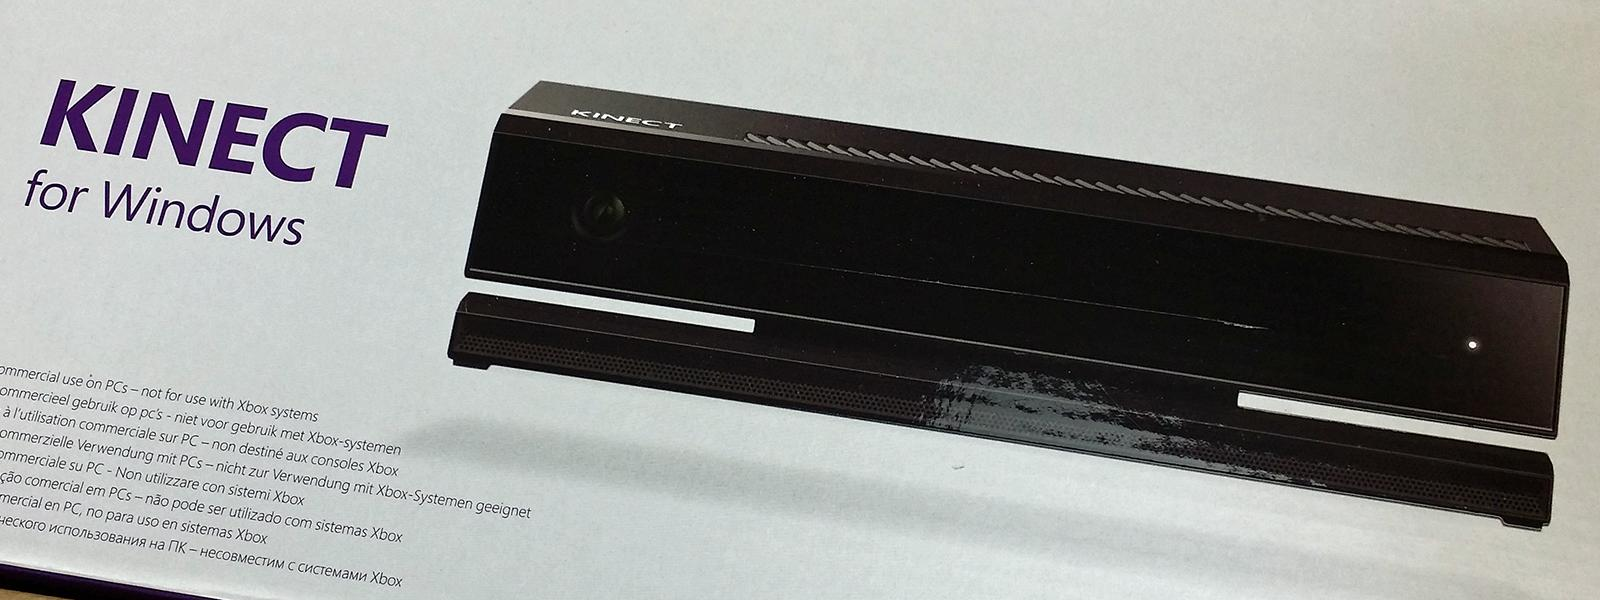 Unboxing de Kinect pour Windows v2